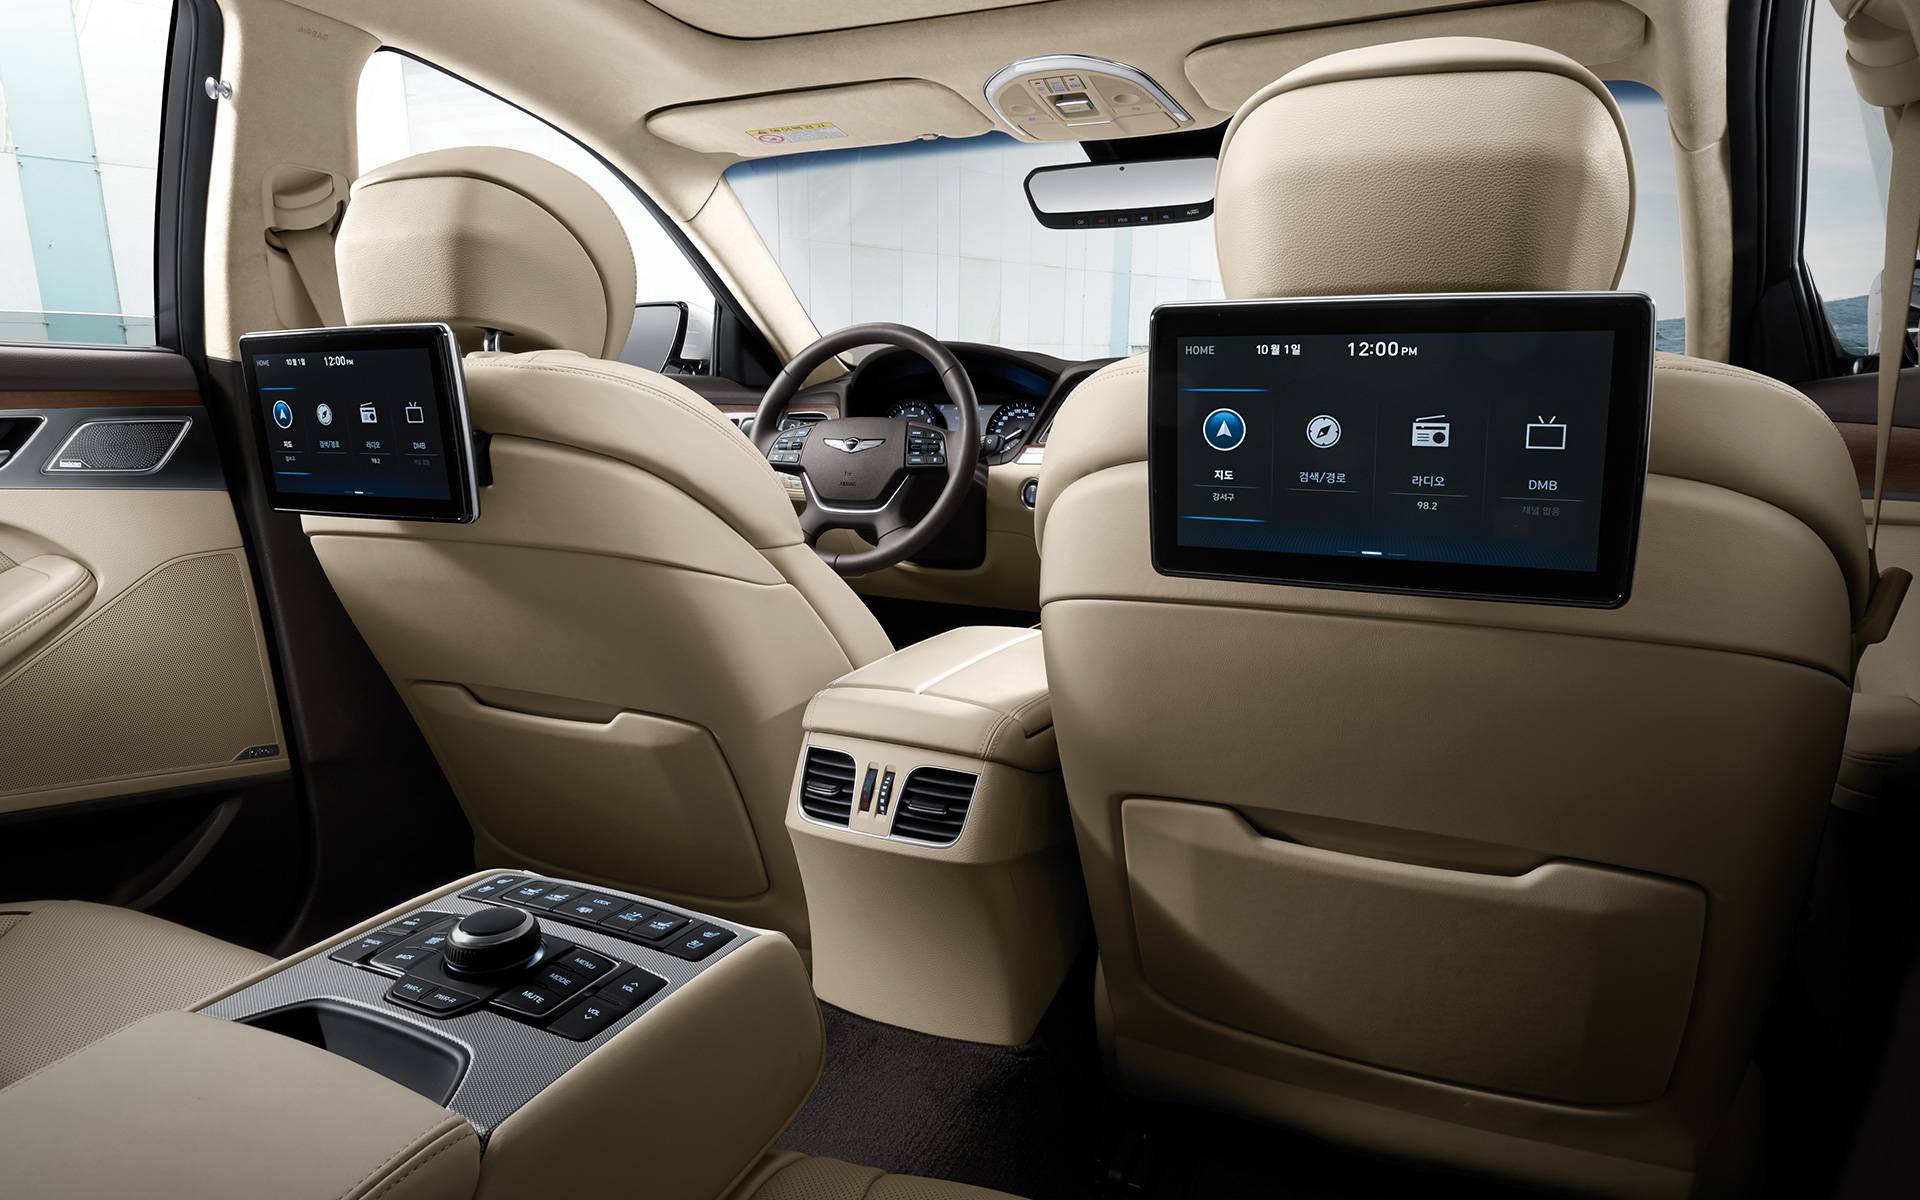 GENESIS G80 Innovation Features - 뒷좌석 듀얼 모니터